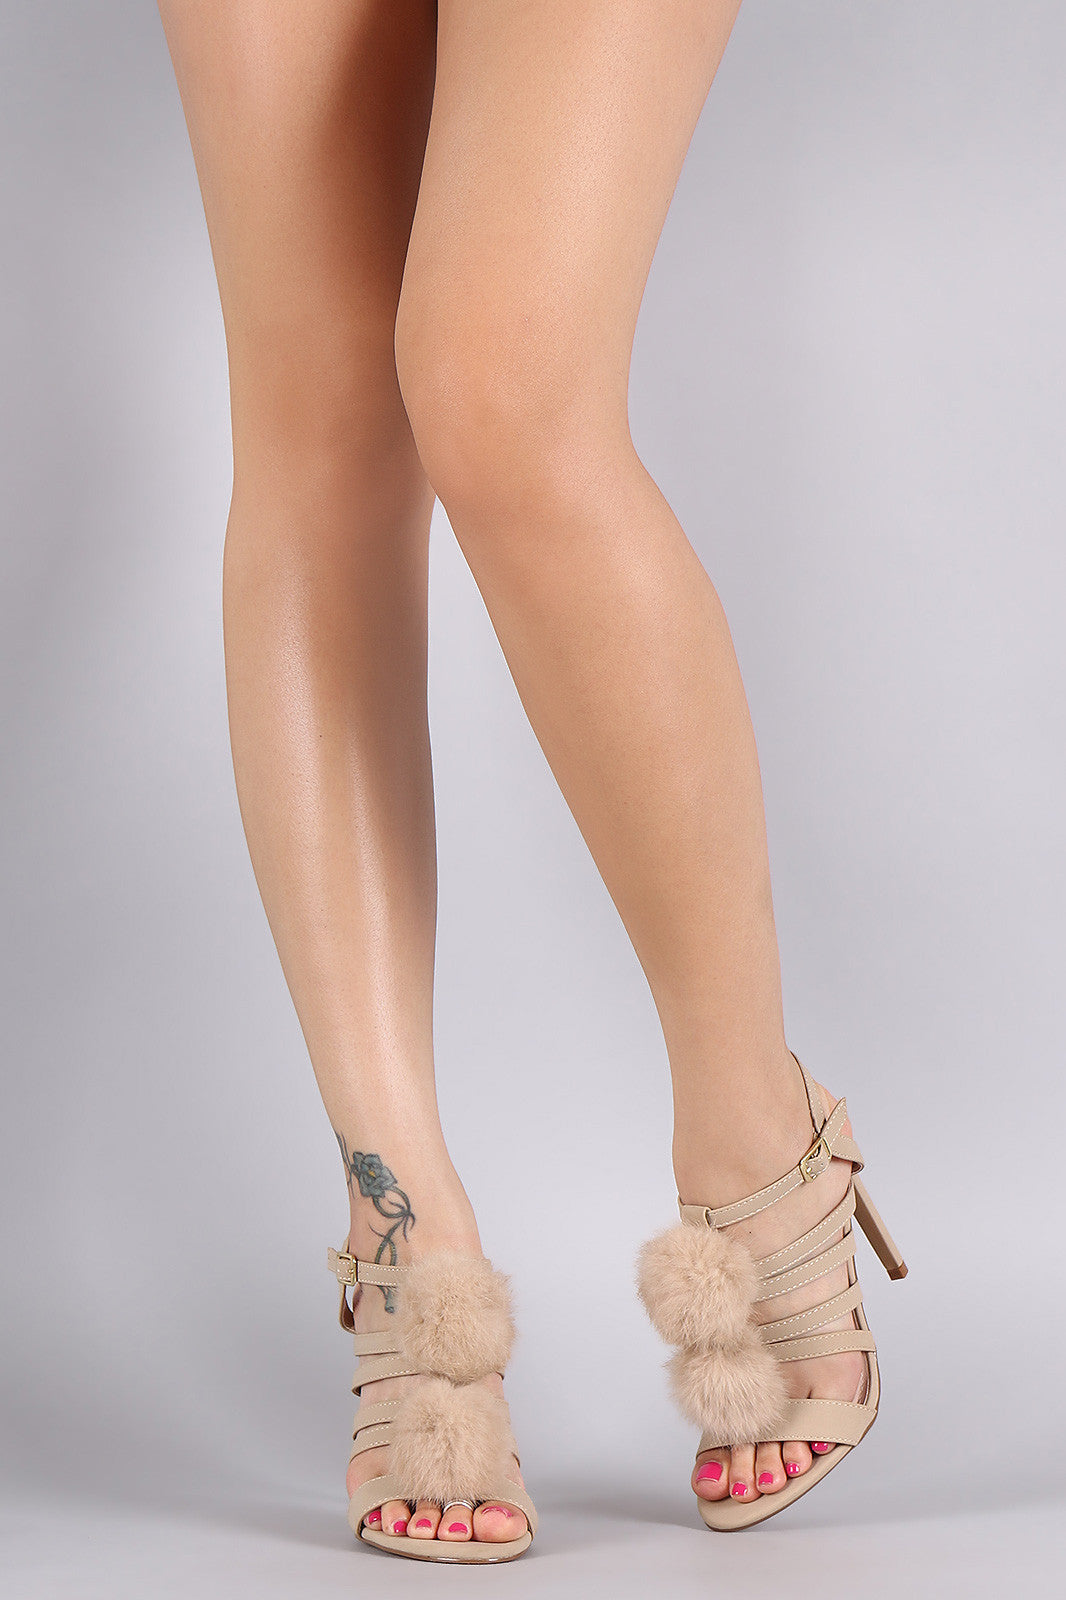 Shoe Republic LA Nubuck Strappy Pom Pom Stiletto Heel - Thick 'N' Curvy Shop - 6